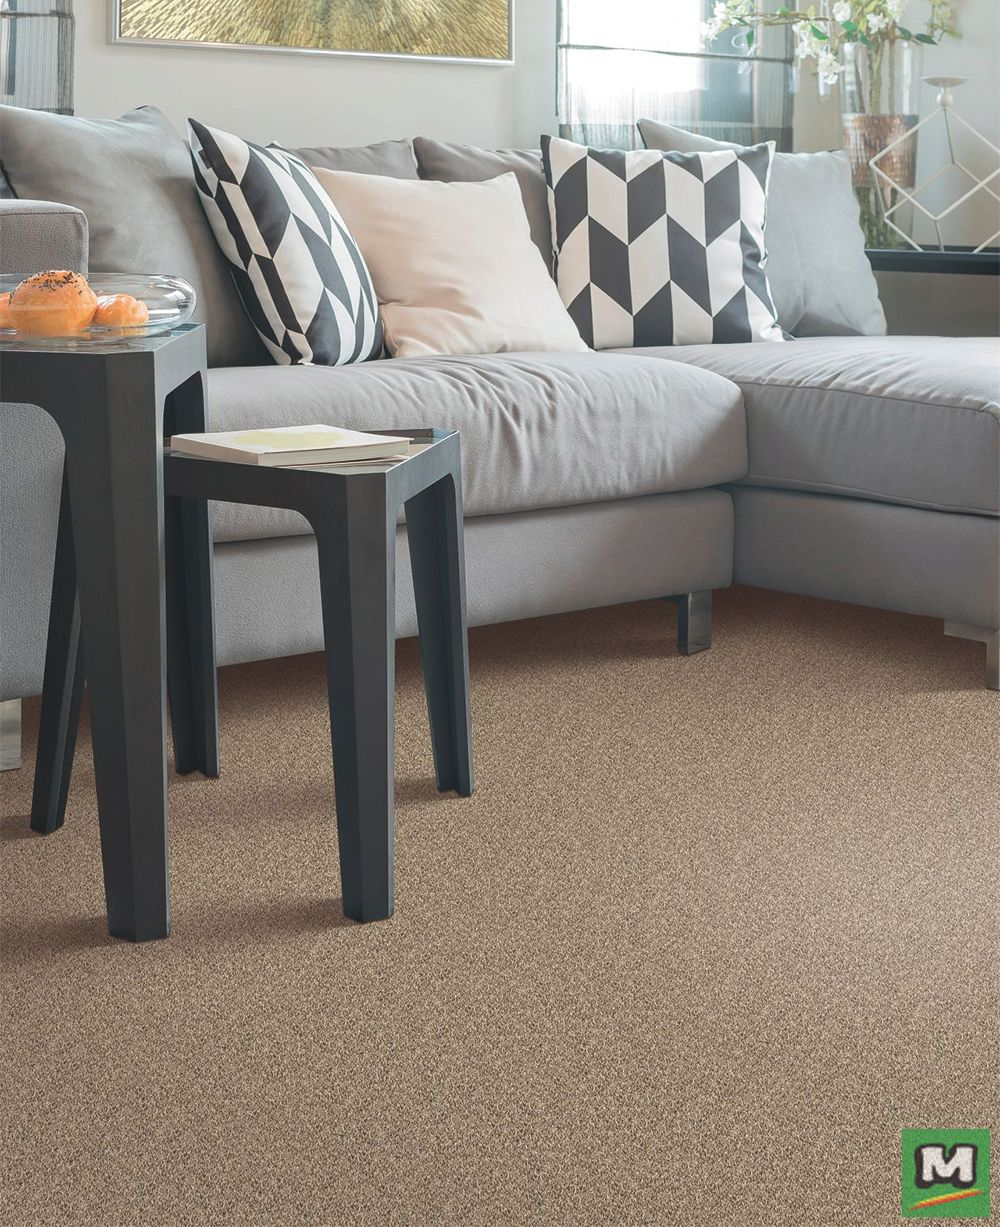 Provide Your Home With Stylish And Quality Flooring Without Harming The Environment By Choosing Mohawk